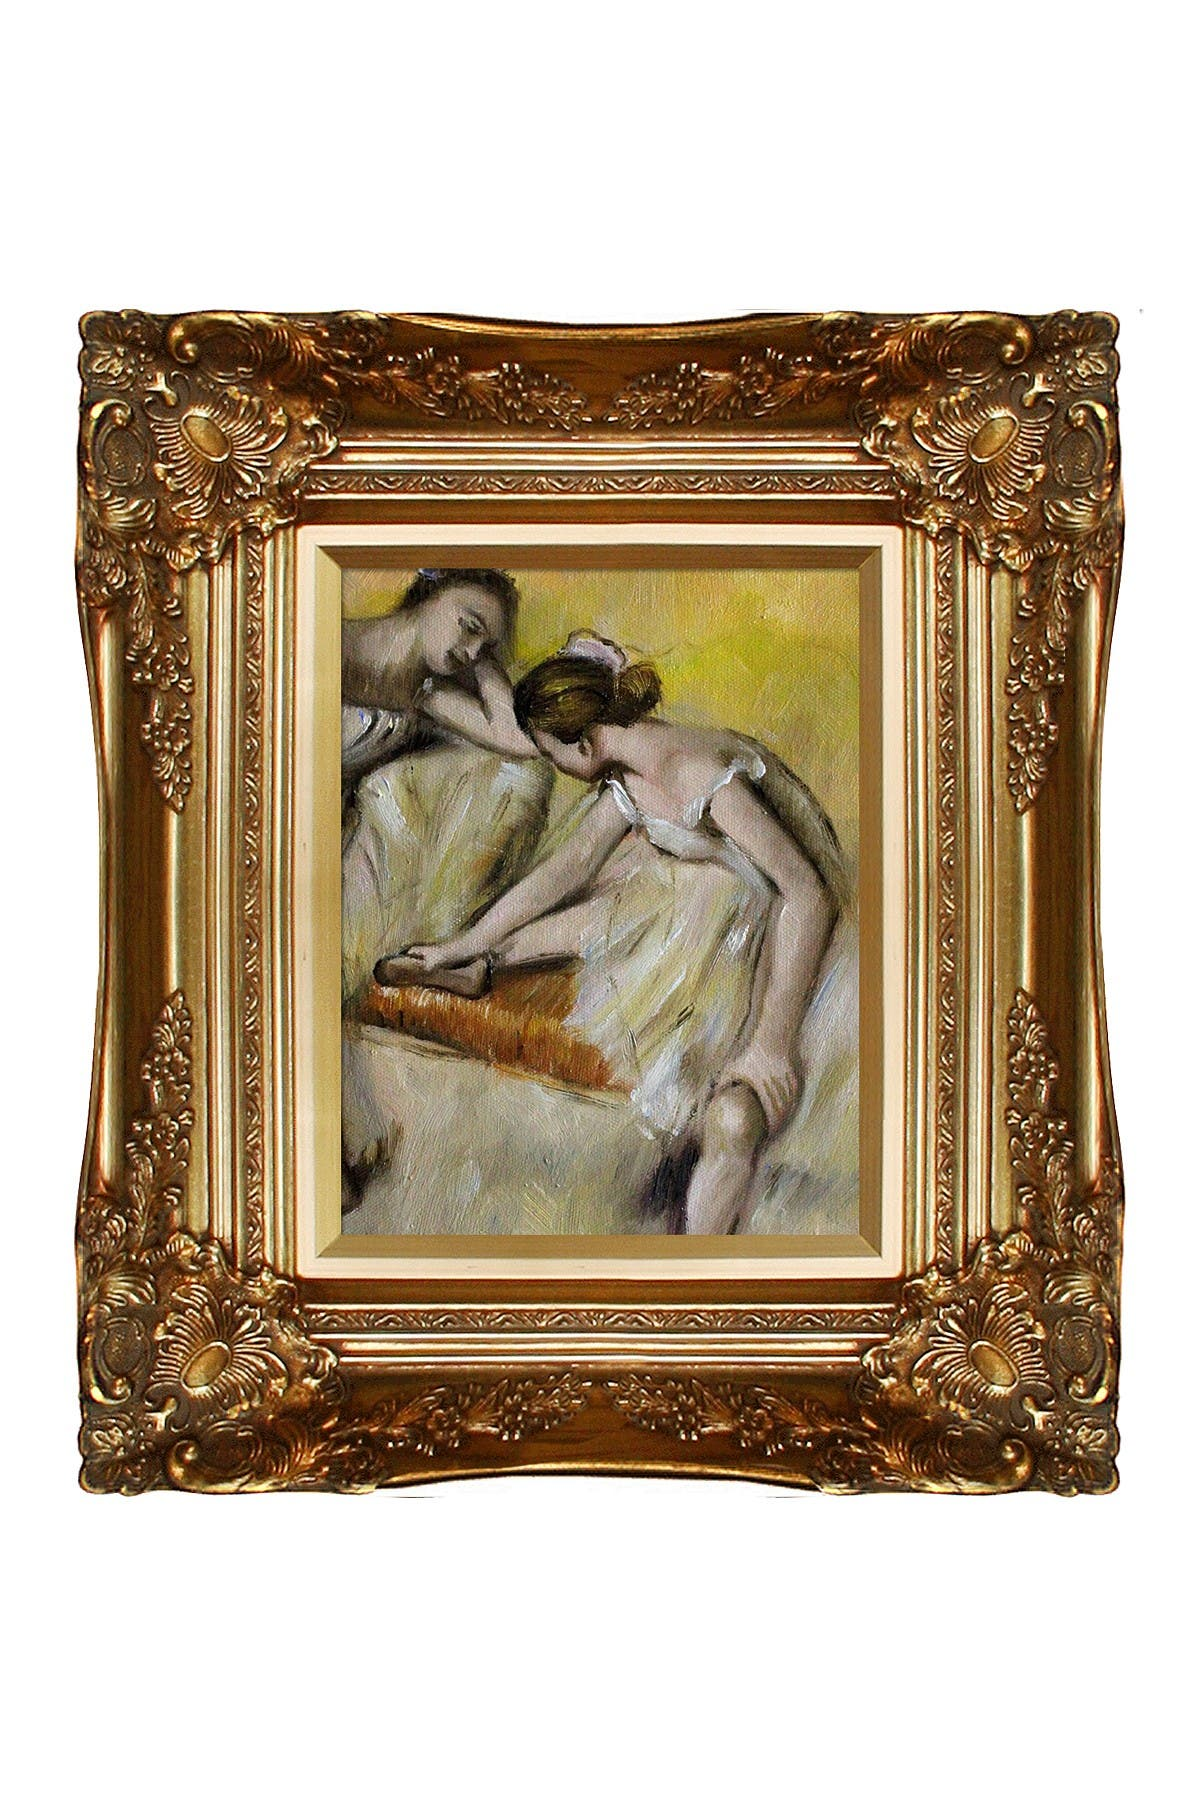 Overstock Art Dancers in Repose with Victorian Gold Frame, 16\\\